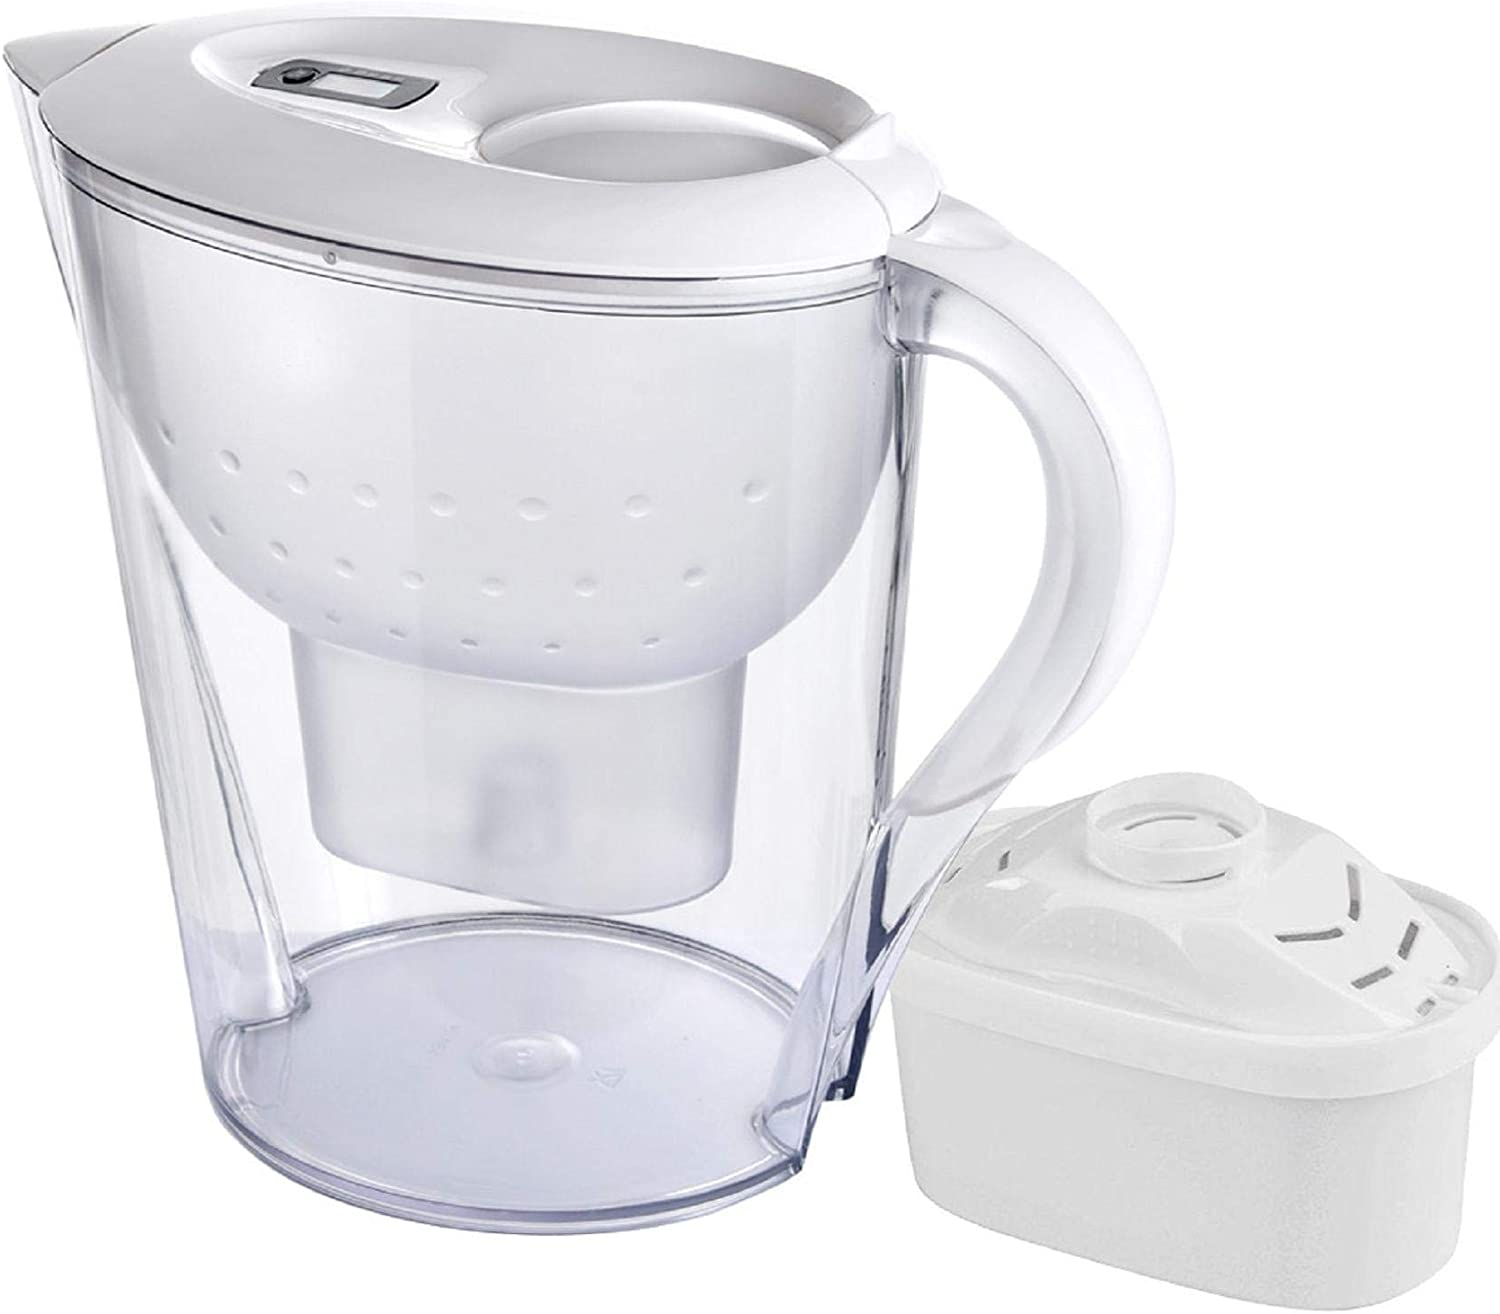 Vertily Water Filter Pitcher,Premium Alkaline Water Pitcher,3.5L Pure Healthy Water Ionizer Activated Carbon Filter,Household Kitchen Activated Carbon Filter Kettle